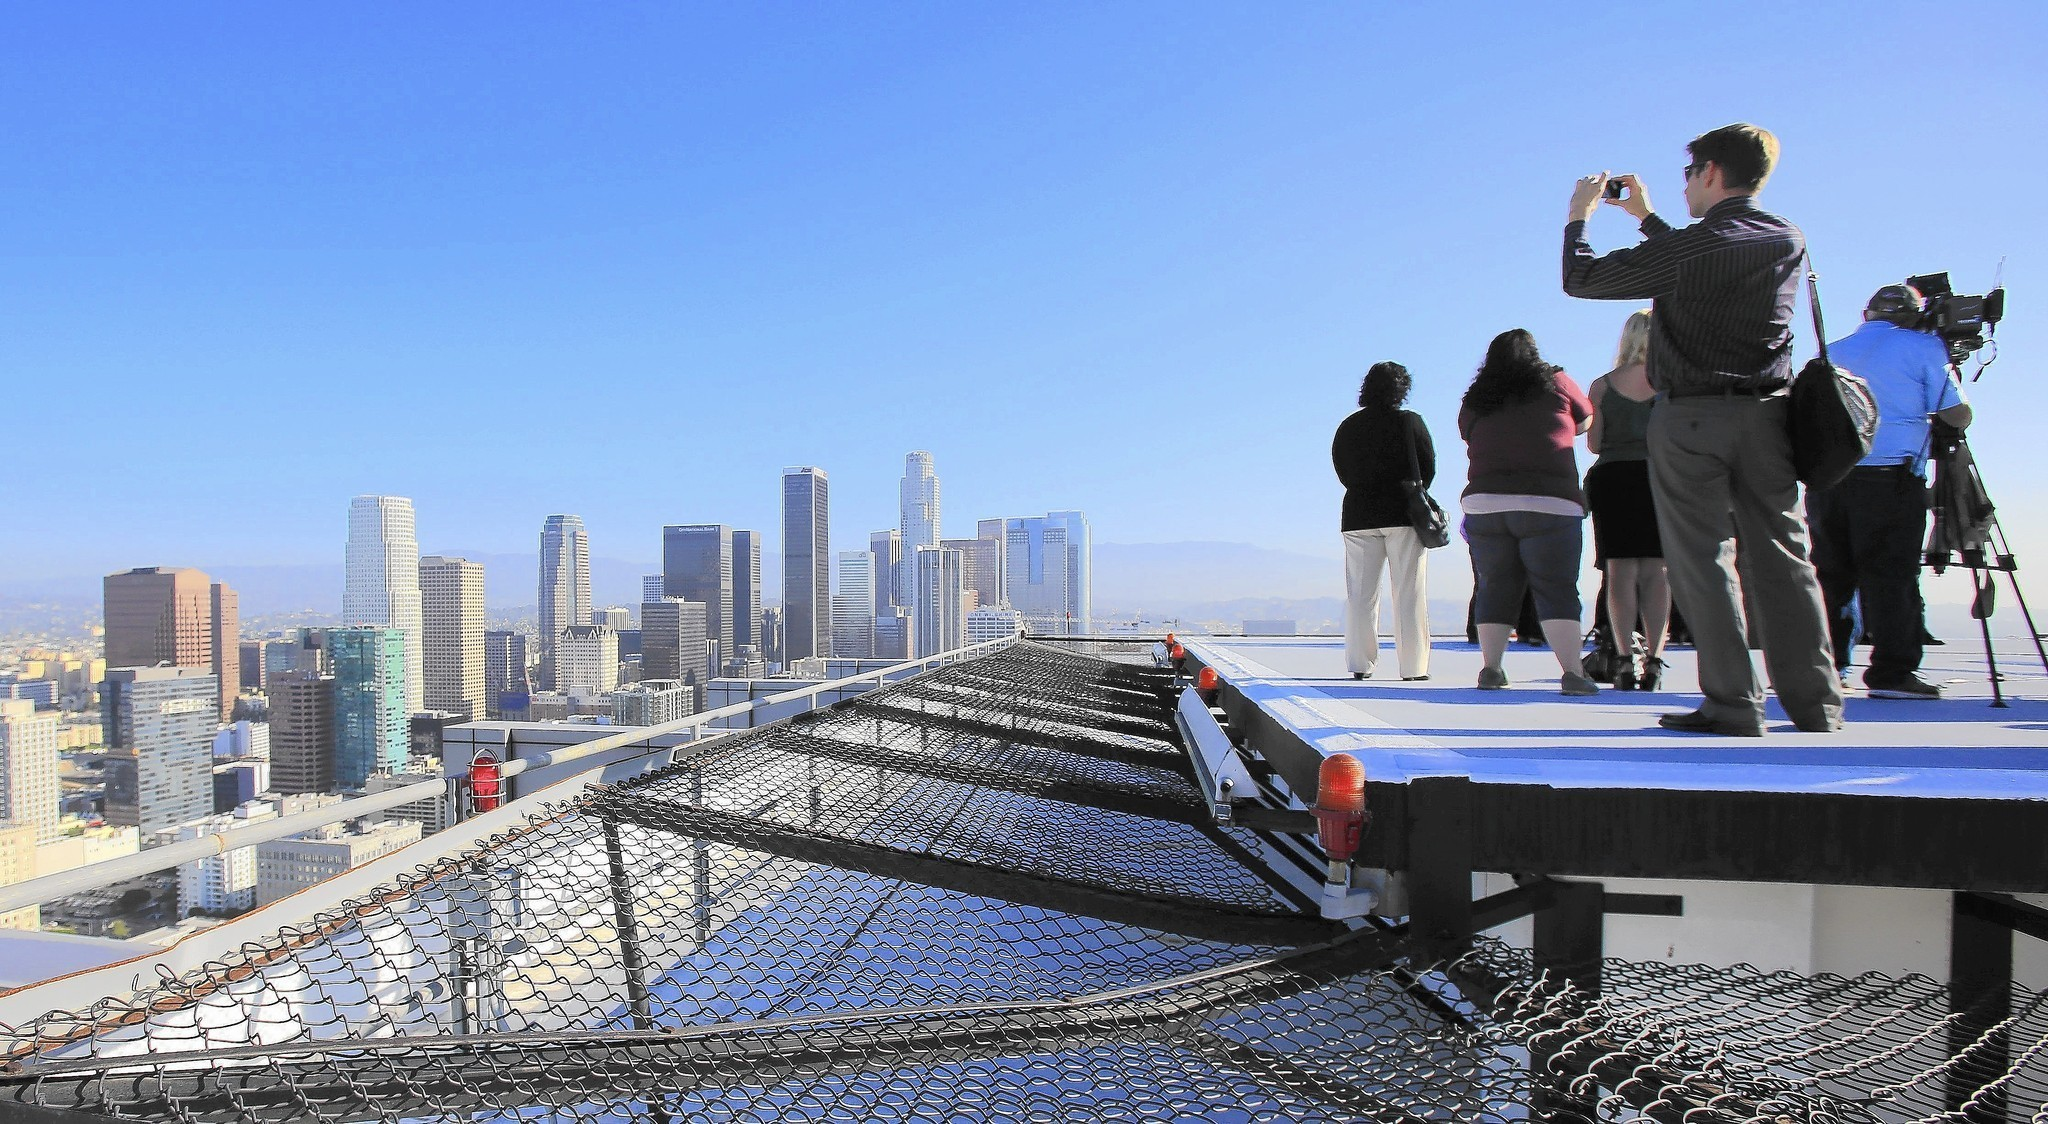 Without mandatory helipads, L.A. skyline can take off